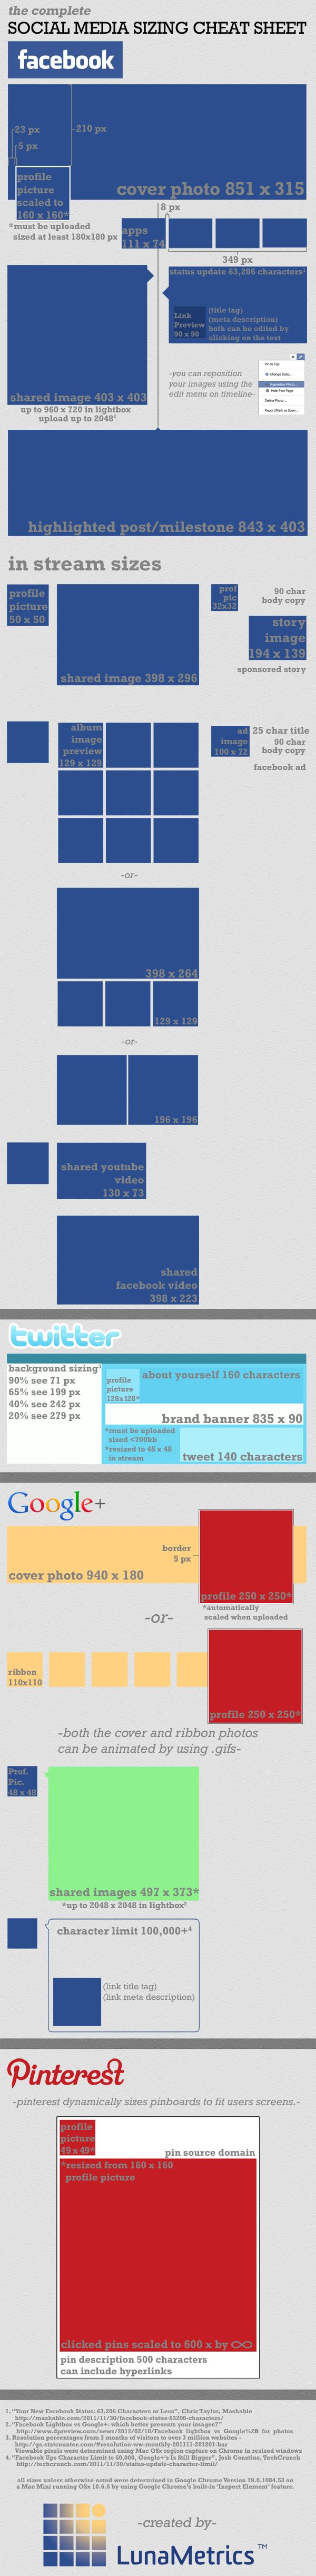 The Complete Social Media Sizing Cheat Sheet - Infographic